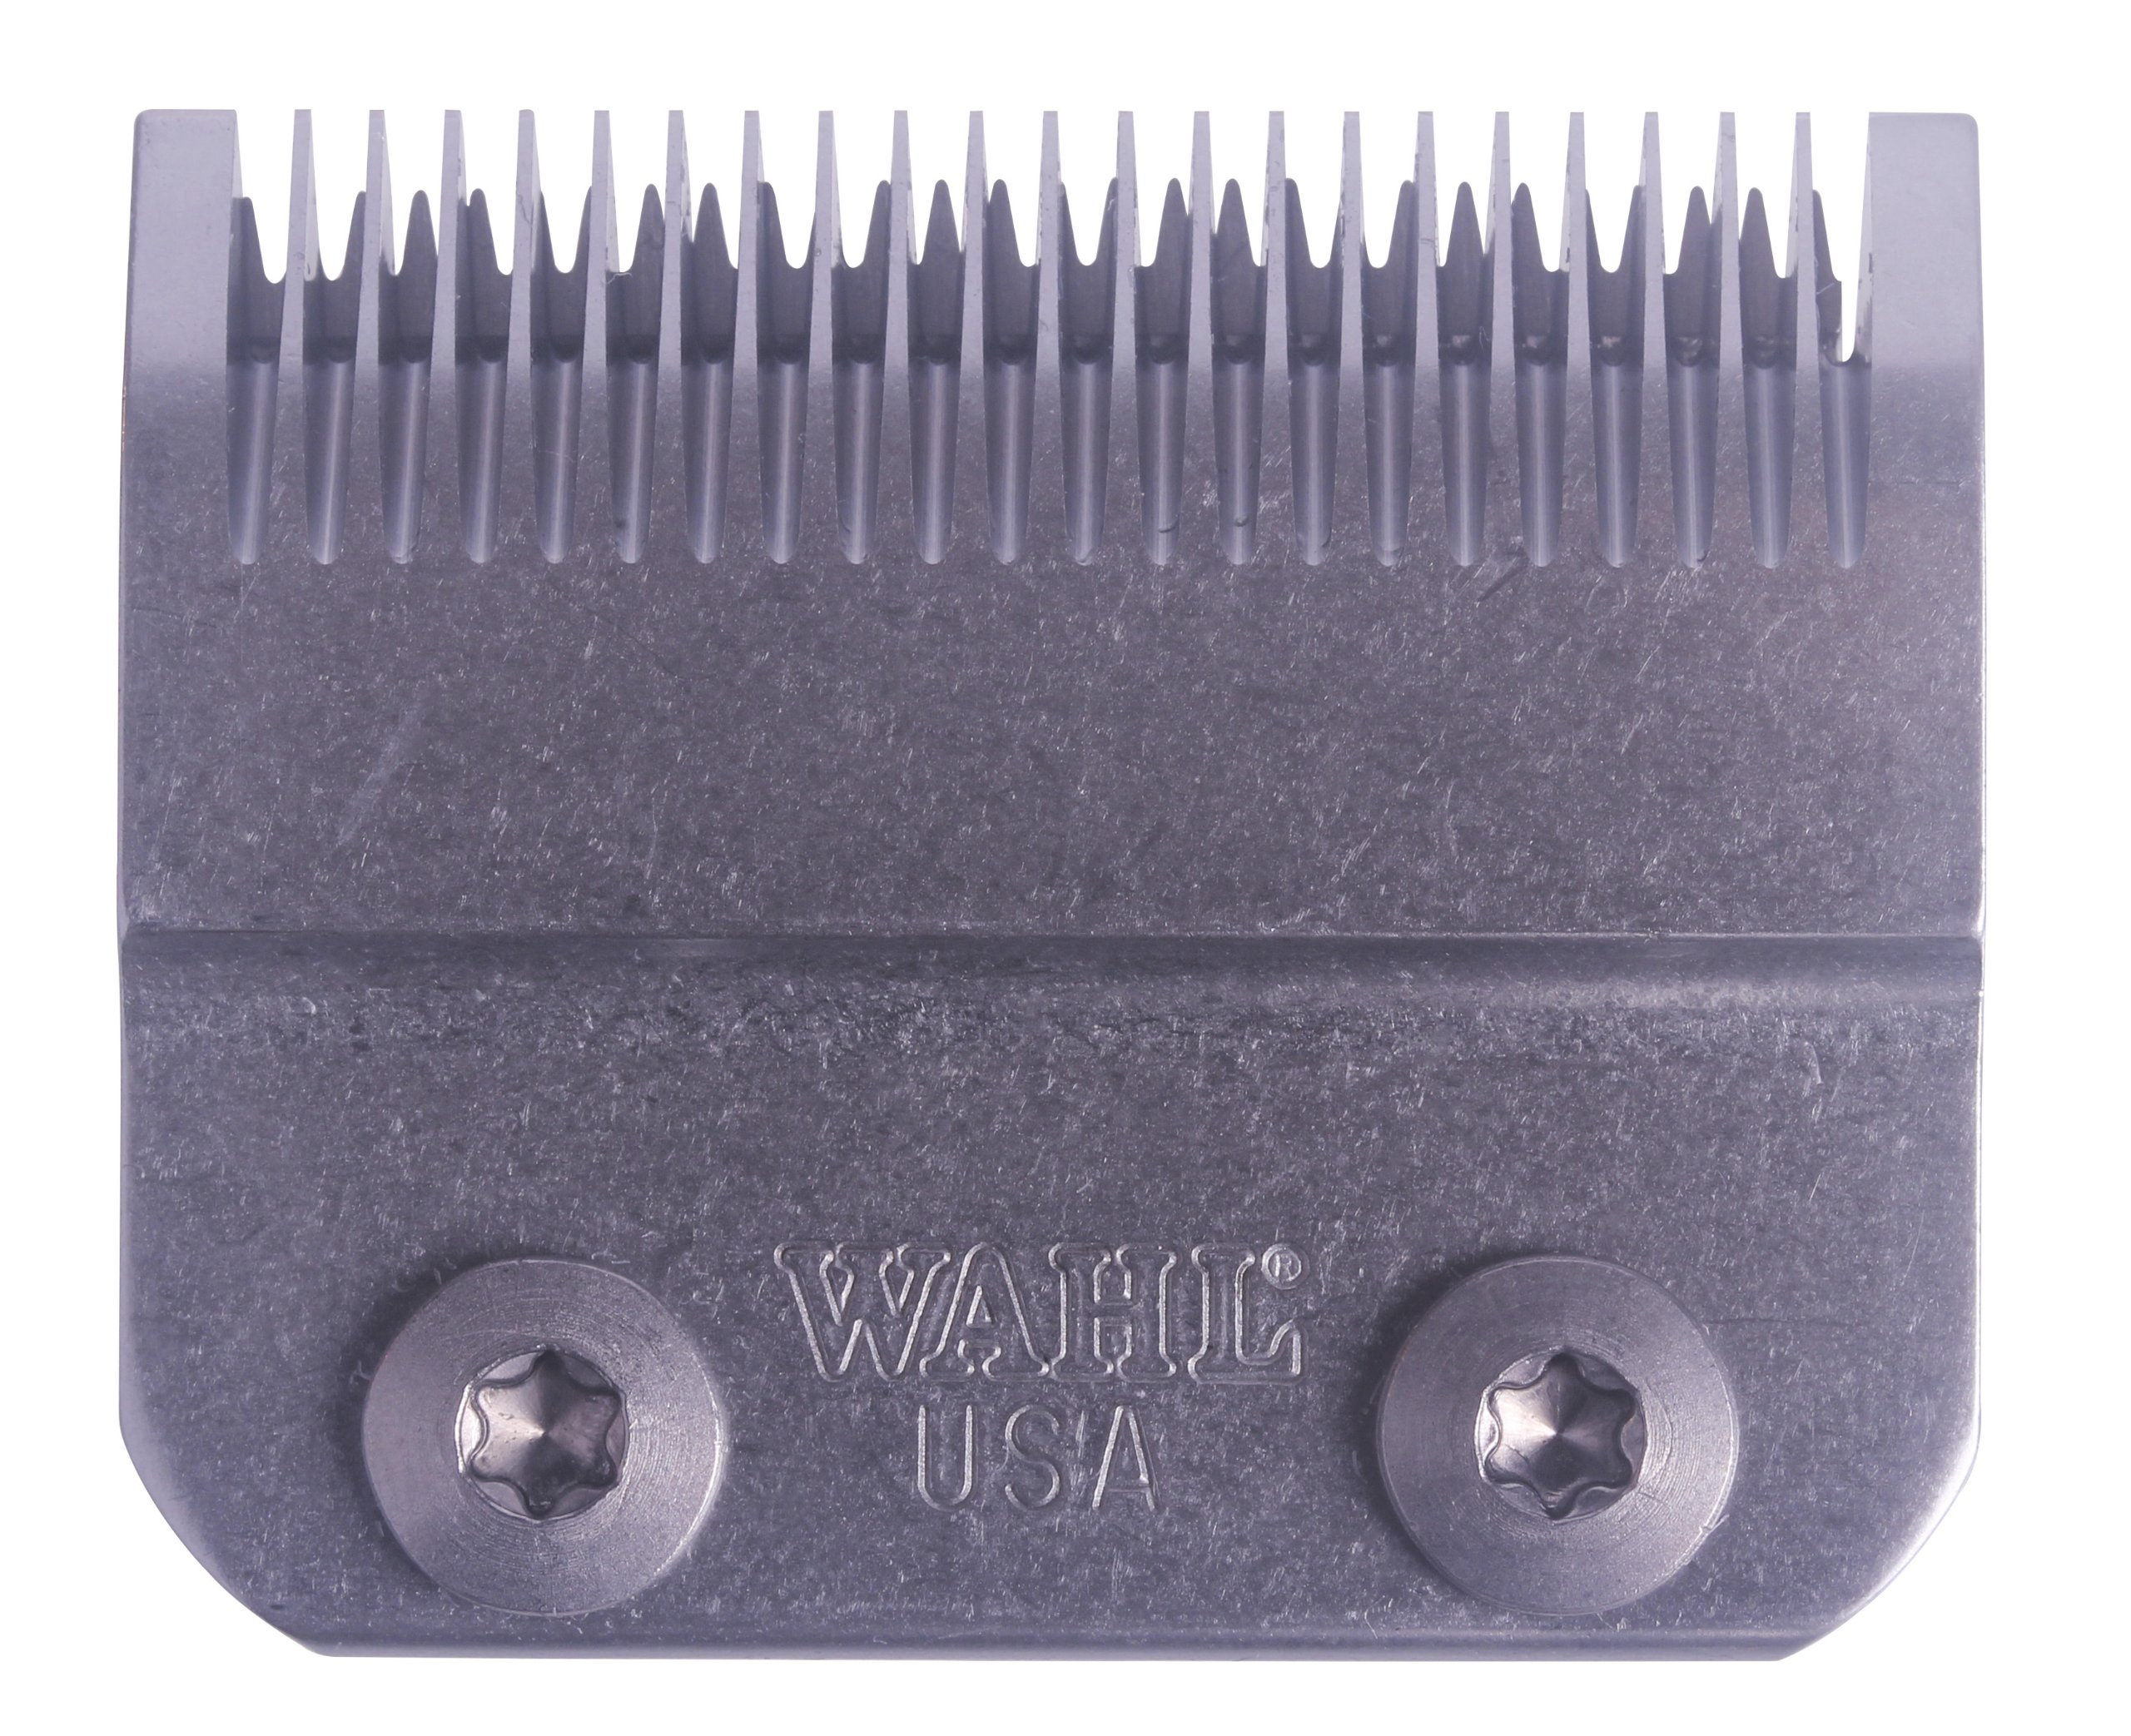 WAHL Pro Series Clipper Replacement Blade Set